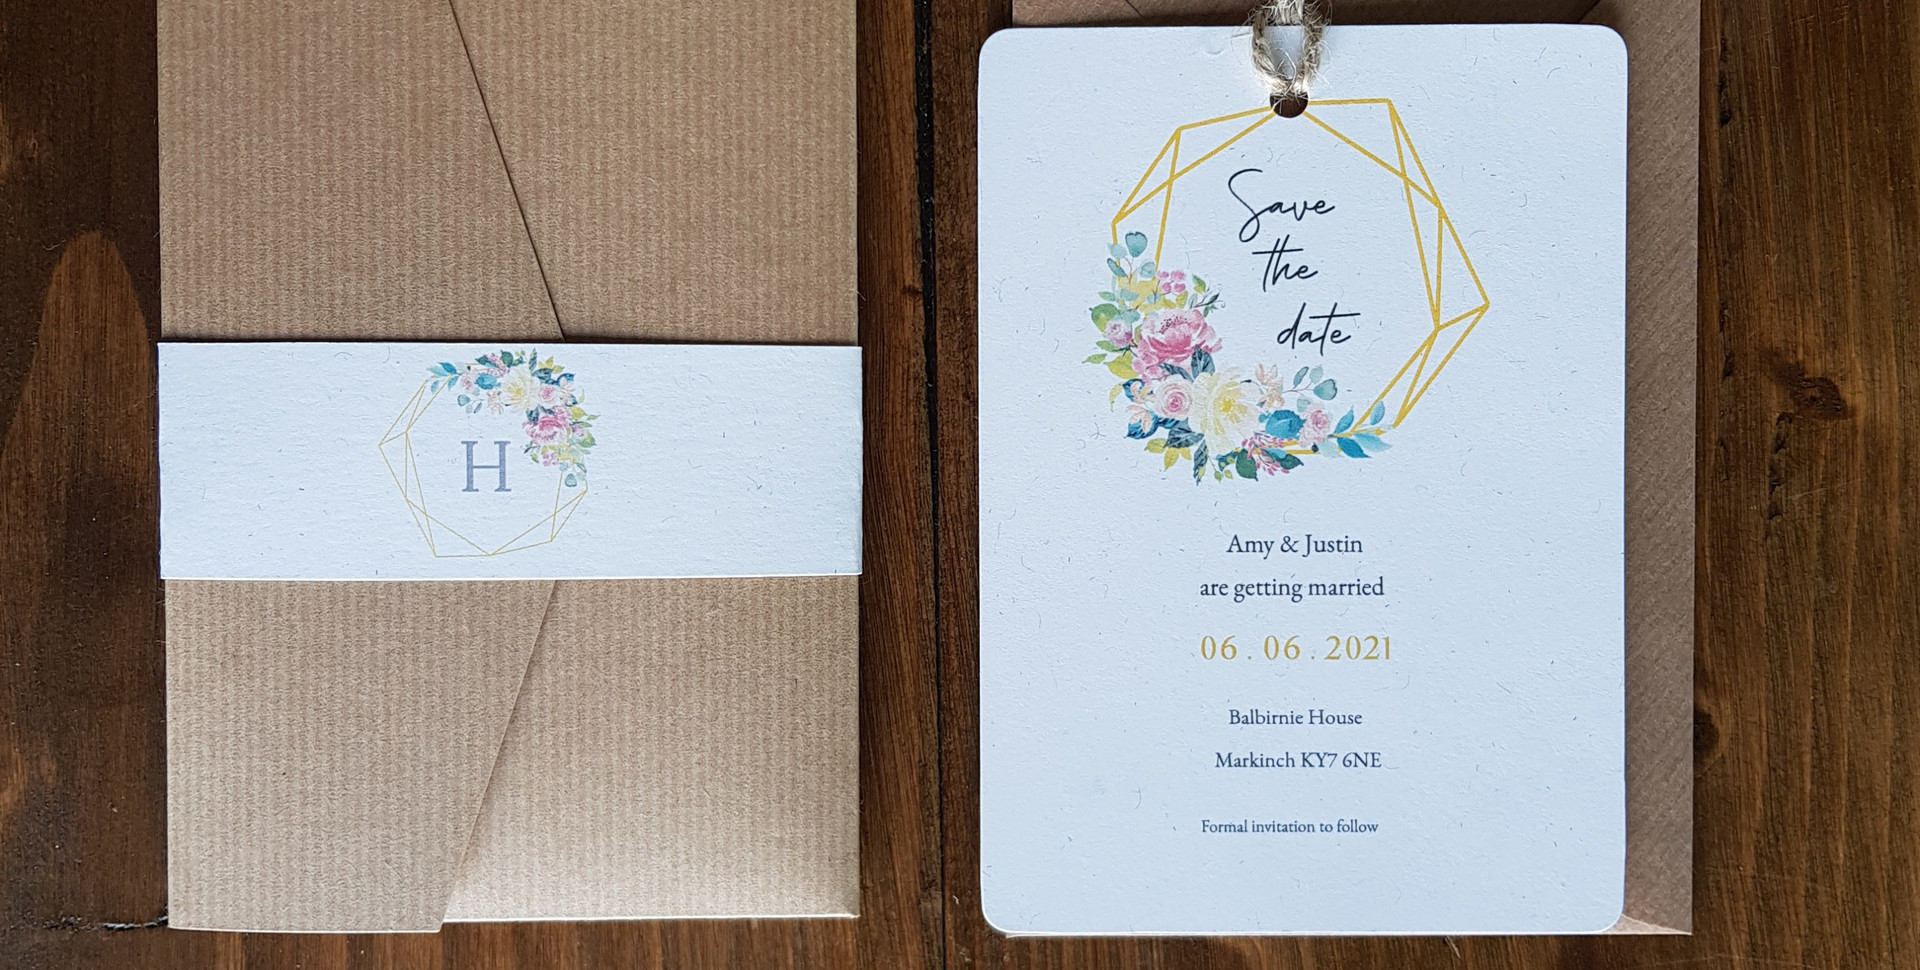 Amy - Save the date and day wedding invitati